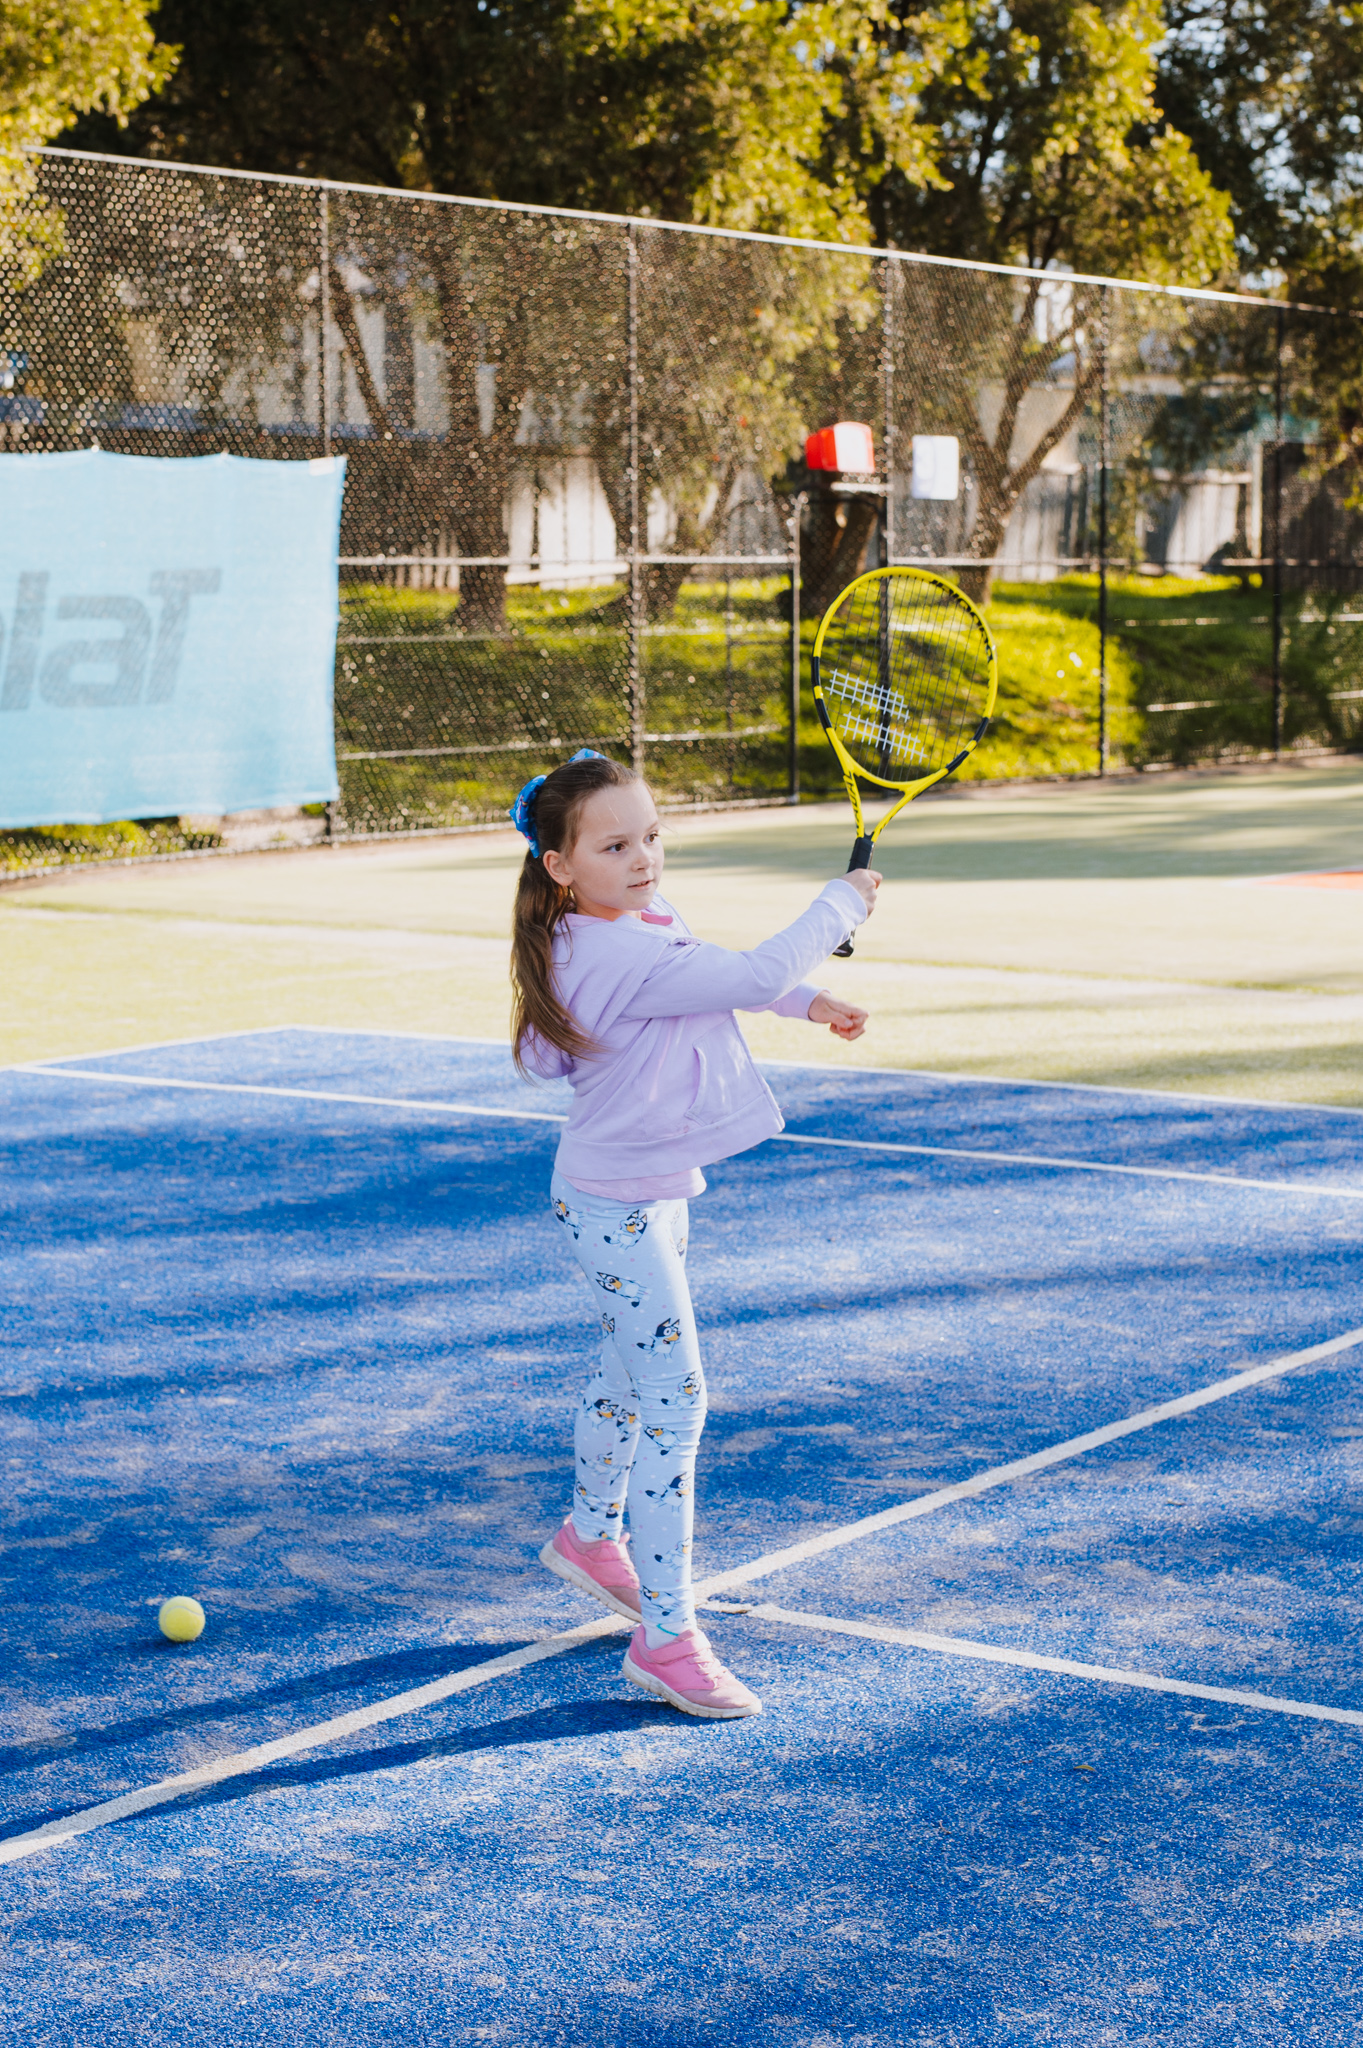 CagneyTennisAcademy-20-8-20-Social-Media-Size-10